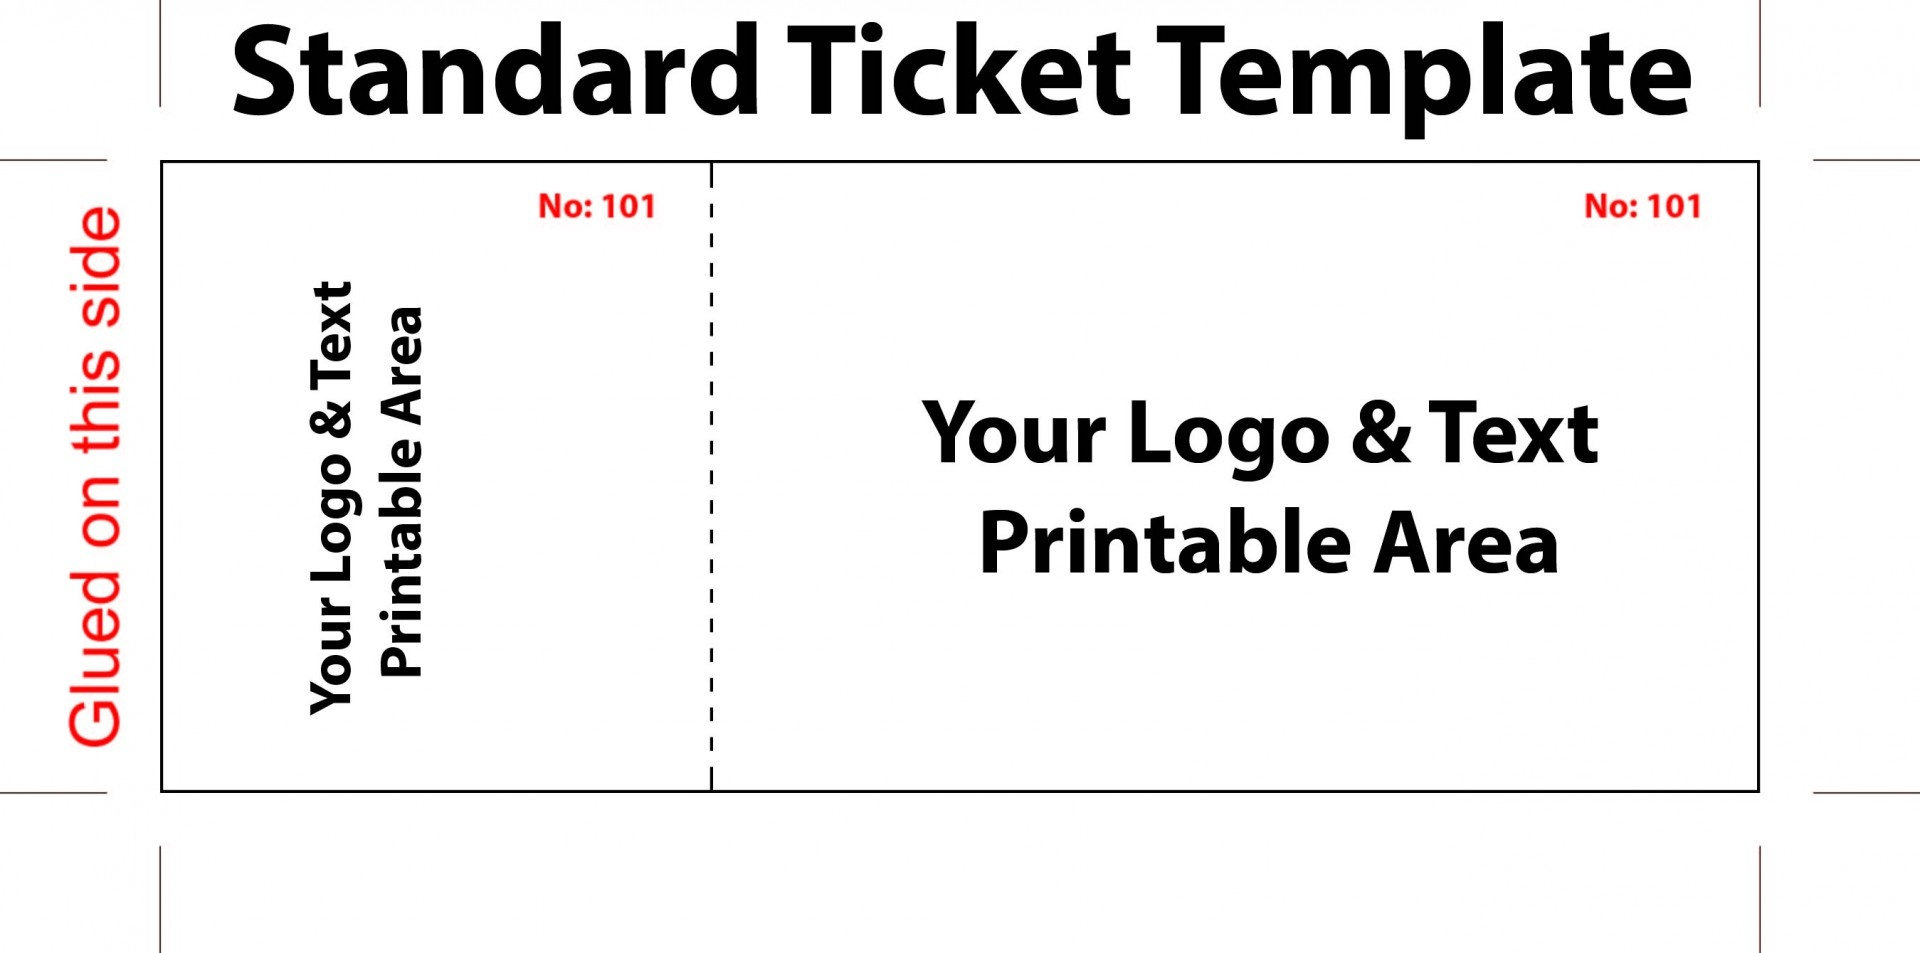 001 Print Tickets Free Template Ideas Printable Ticket Templates - Make Your Own Tickets Free Printable